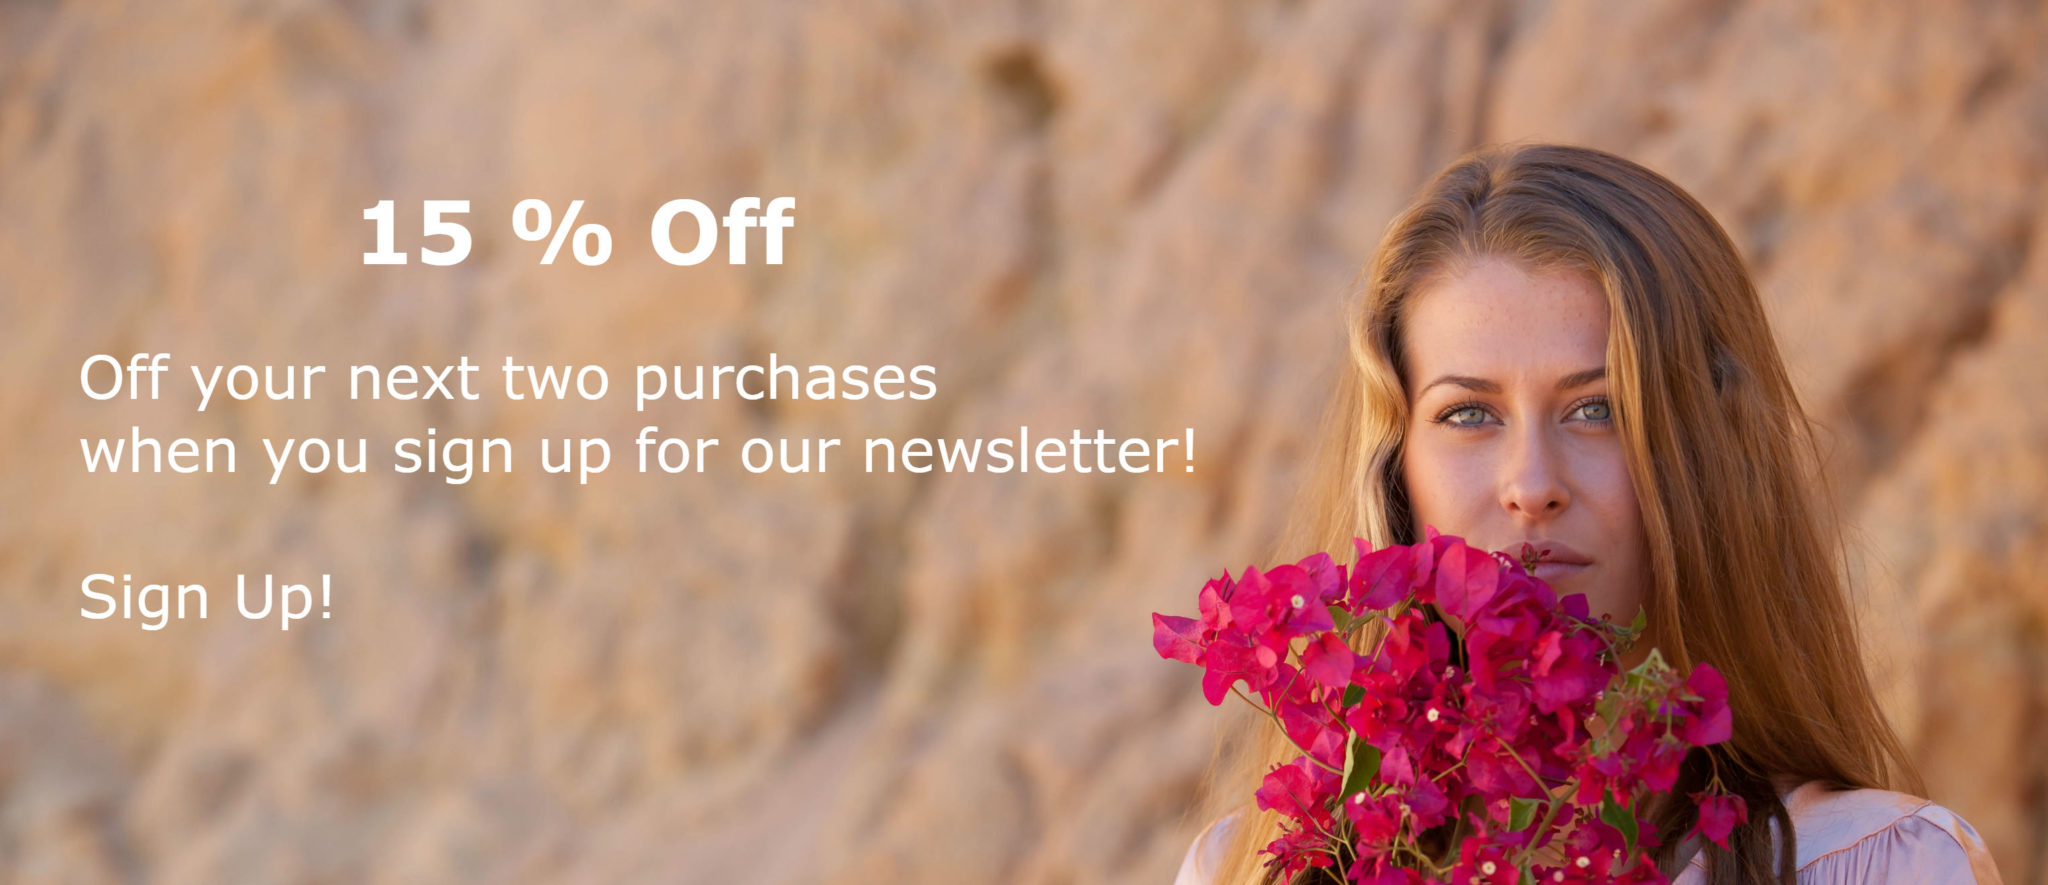 15%-off-your-next-two-purchases-when-you-sign-up-for-our-newsletter